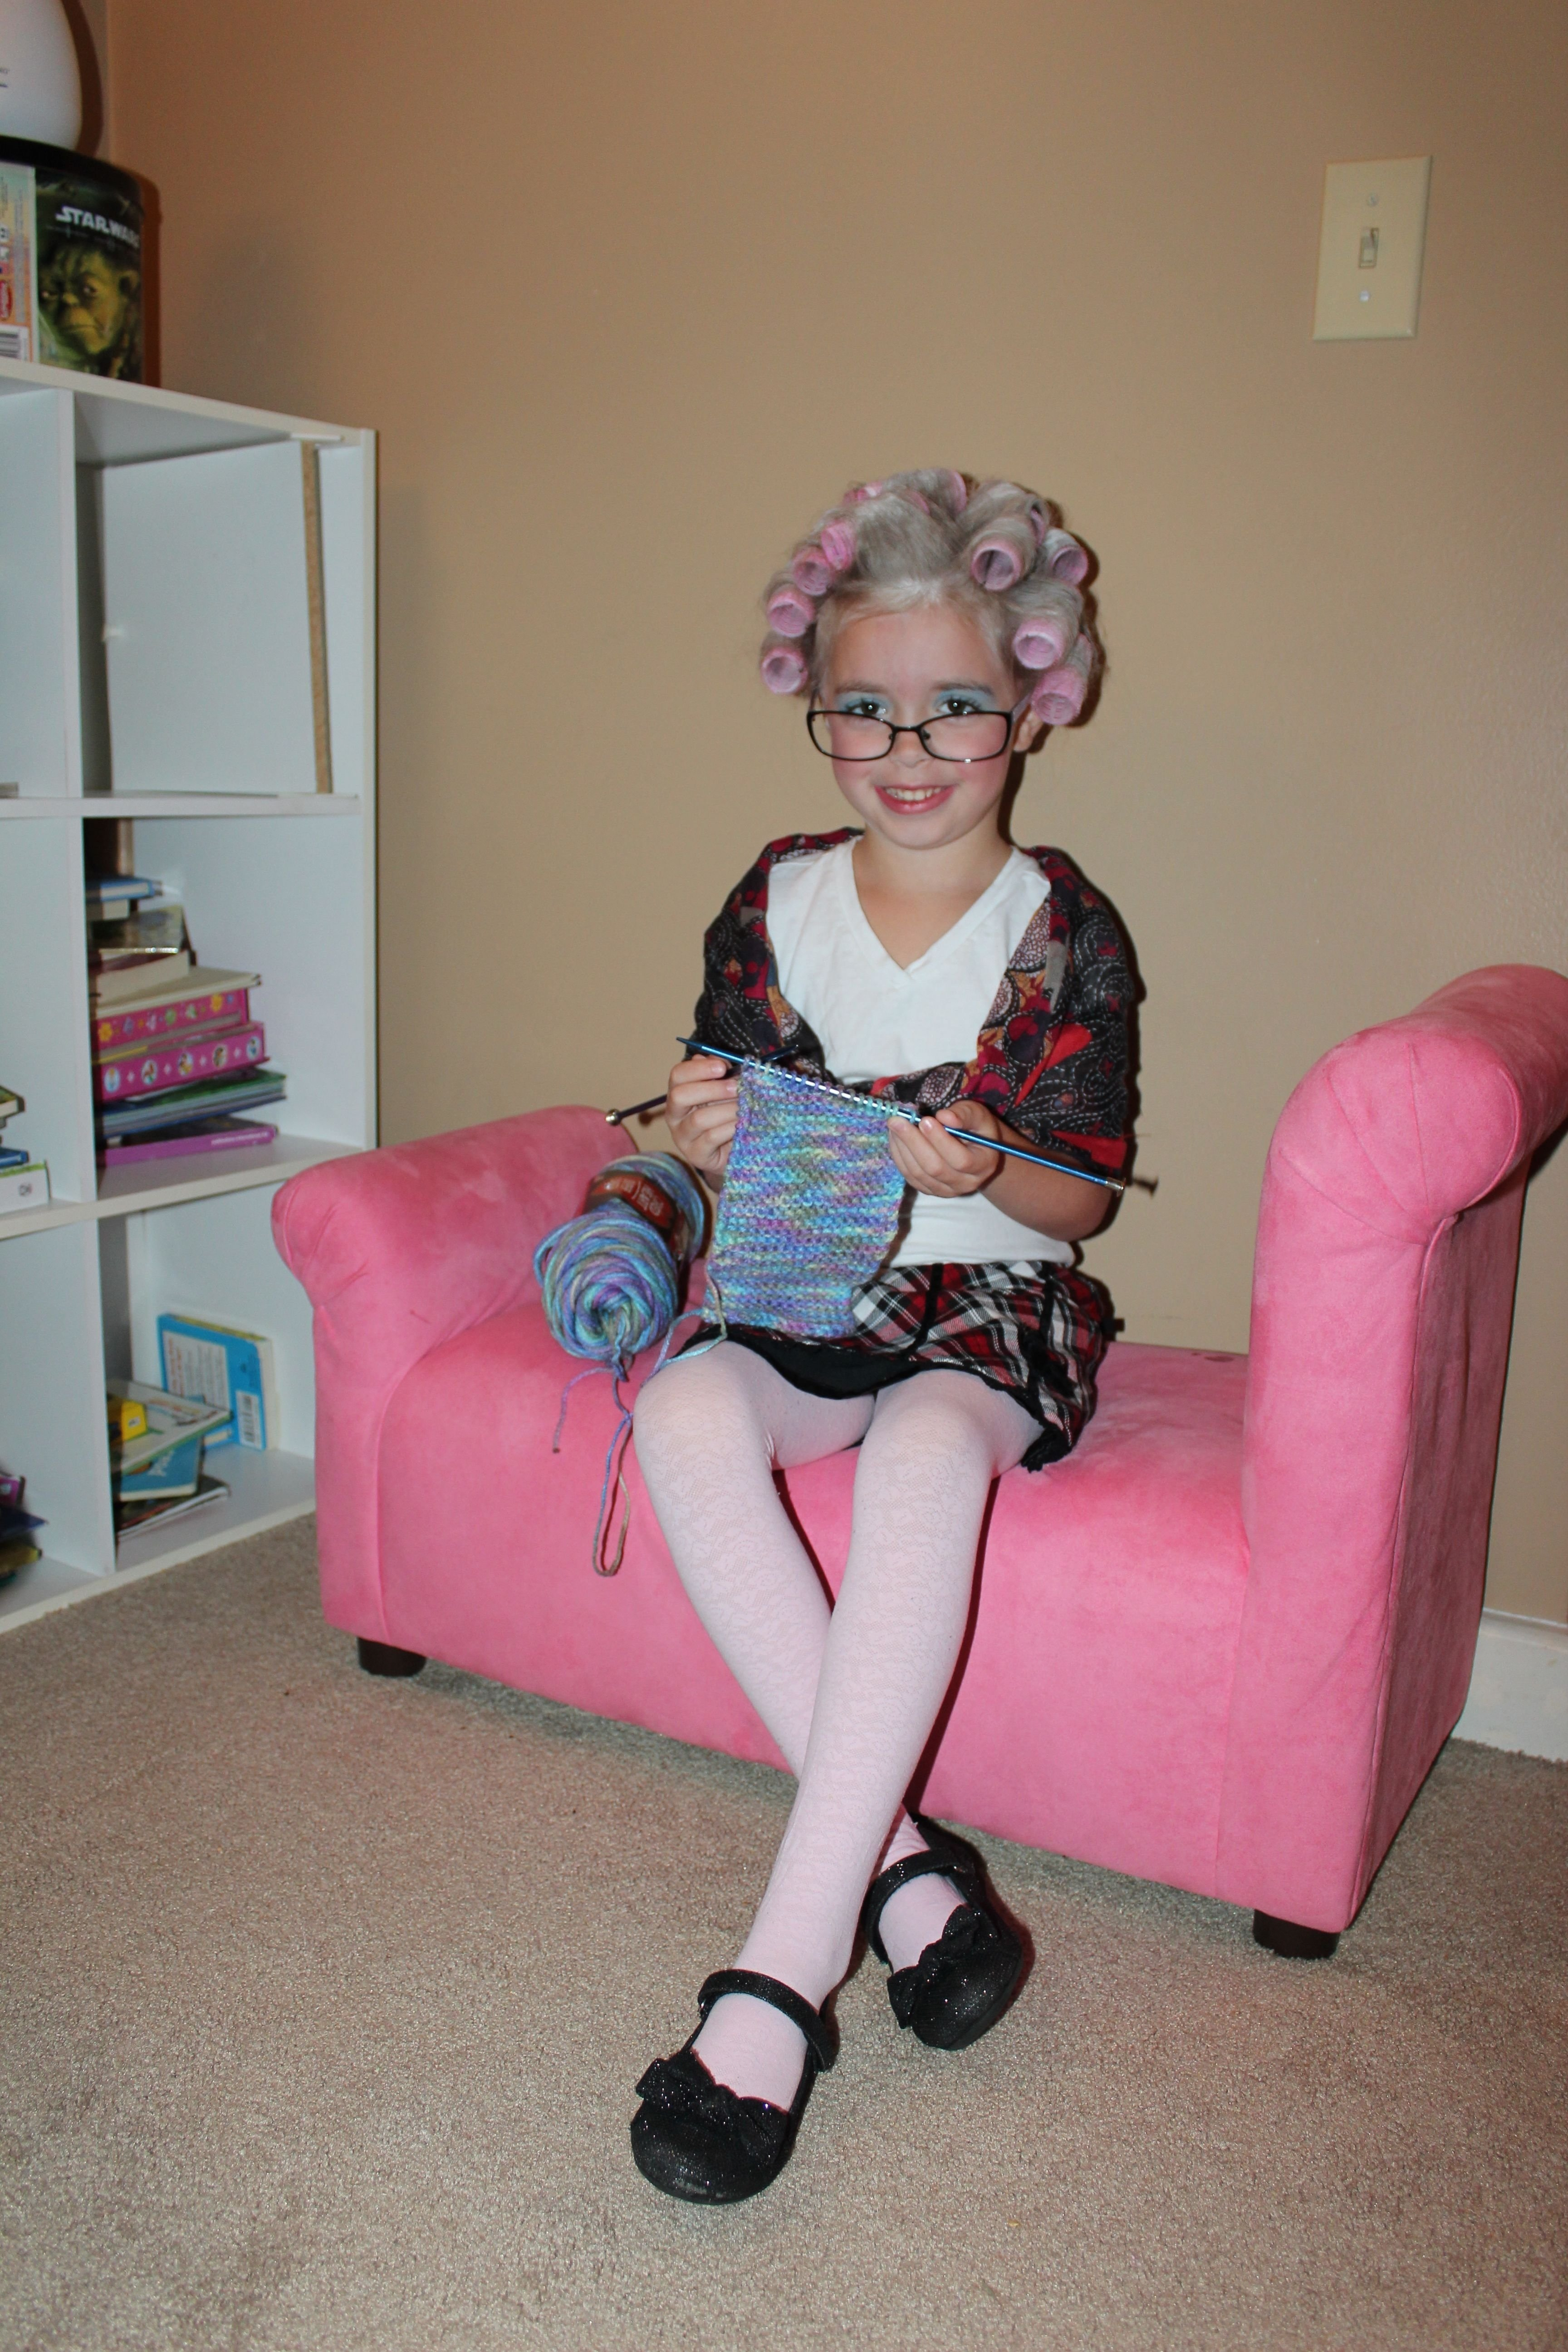 10 Attractive Old Lady Halloween Costume Ideas old lady costume roll the hair in velcro rollers put baby powder